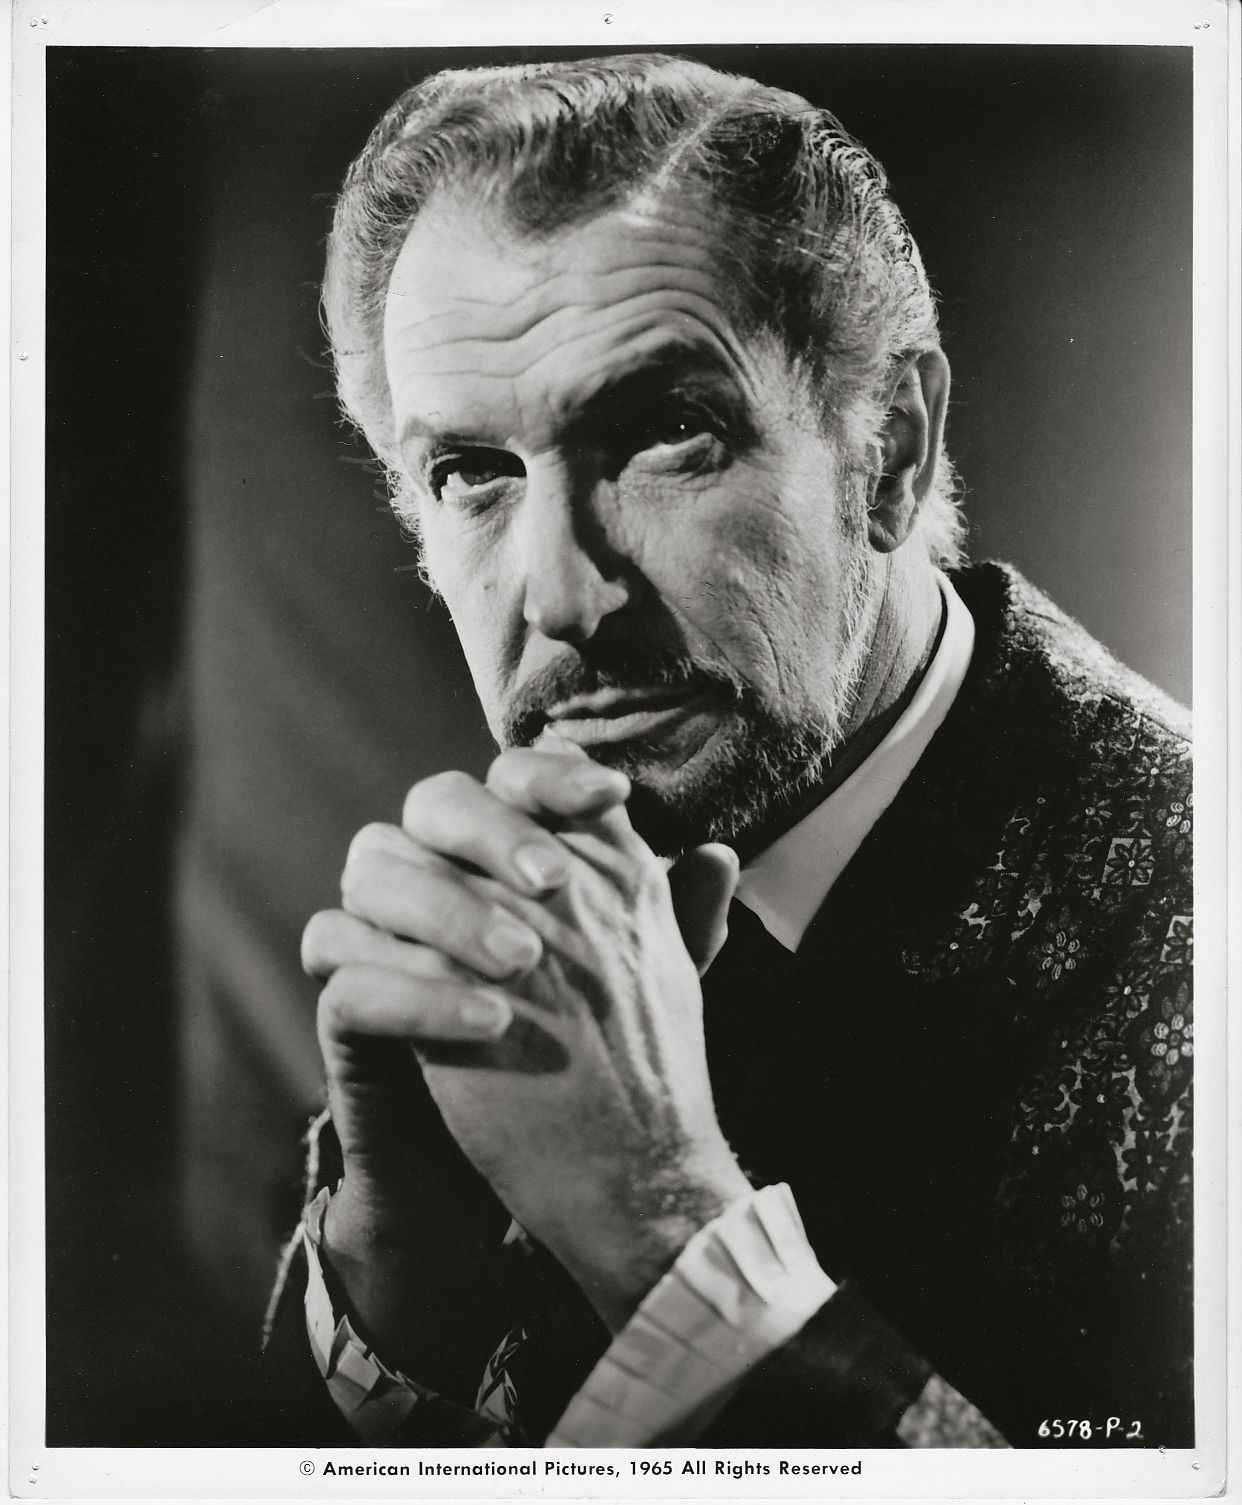 Vincent Price-DR.GOLDFOOT AND THE BIKINI MACHINE (1965)